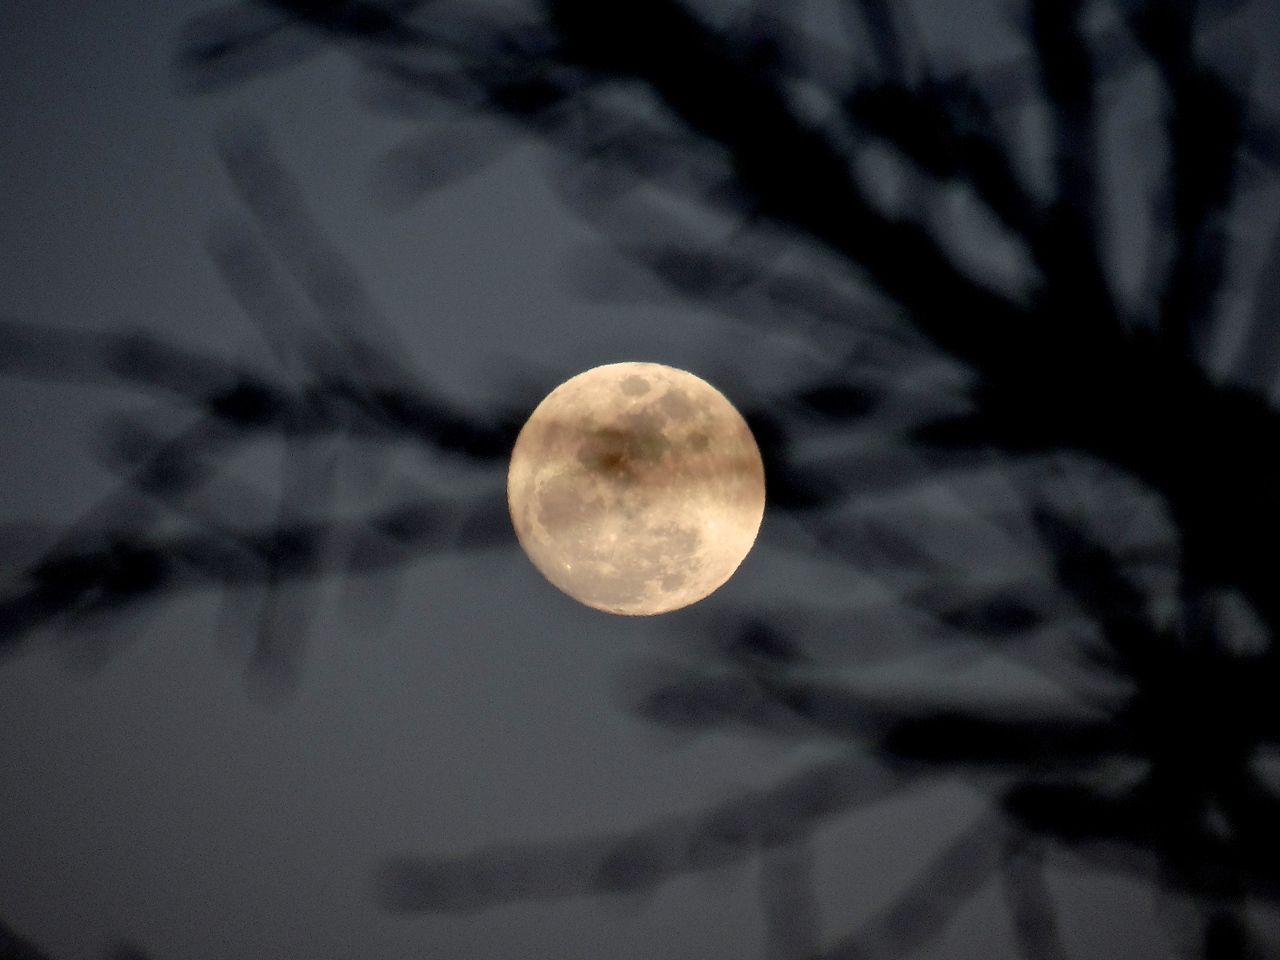 Focus on the moon, hold the shutter down half way, step behind a tree, snap